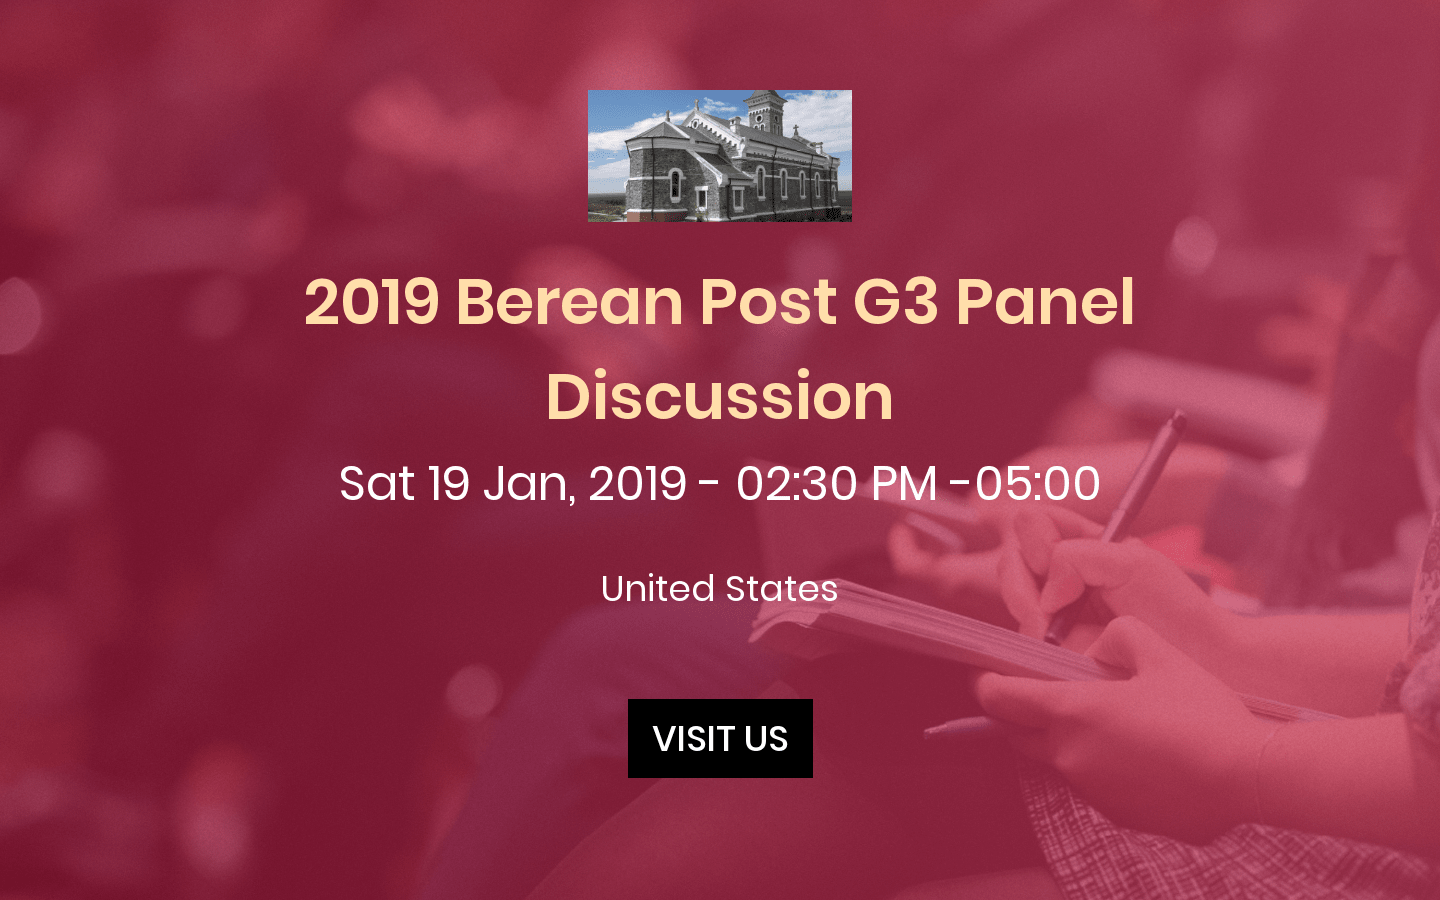 2019 Berean Post G3 Panel Discussion - Home